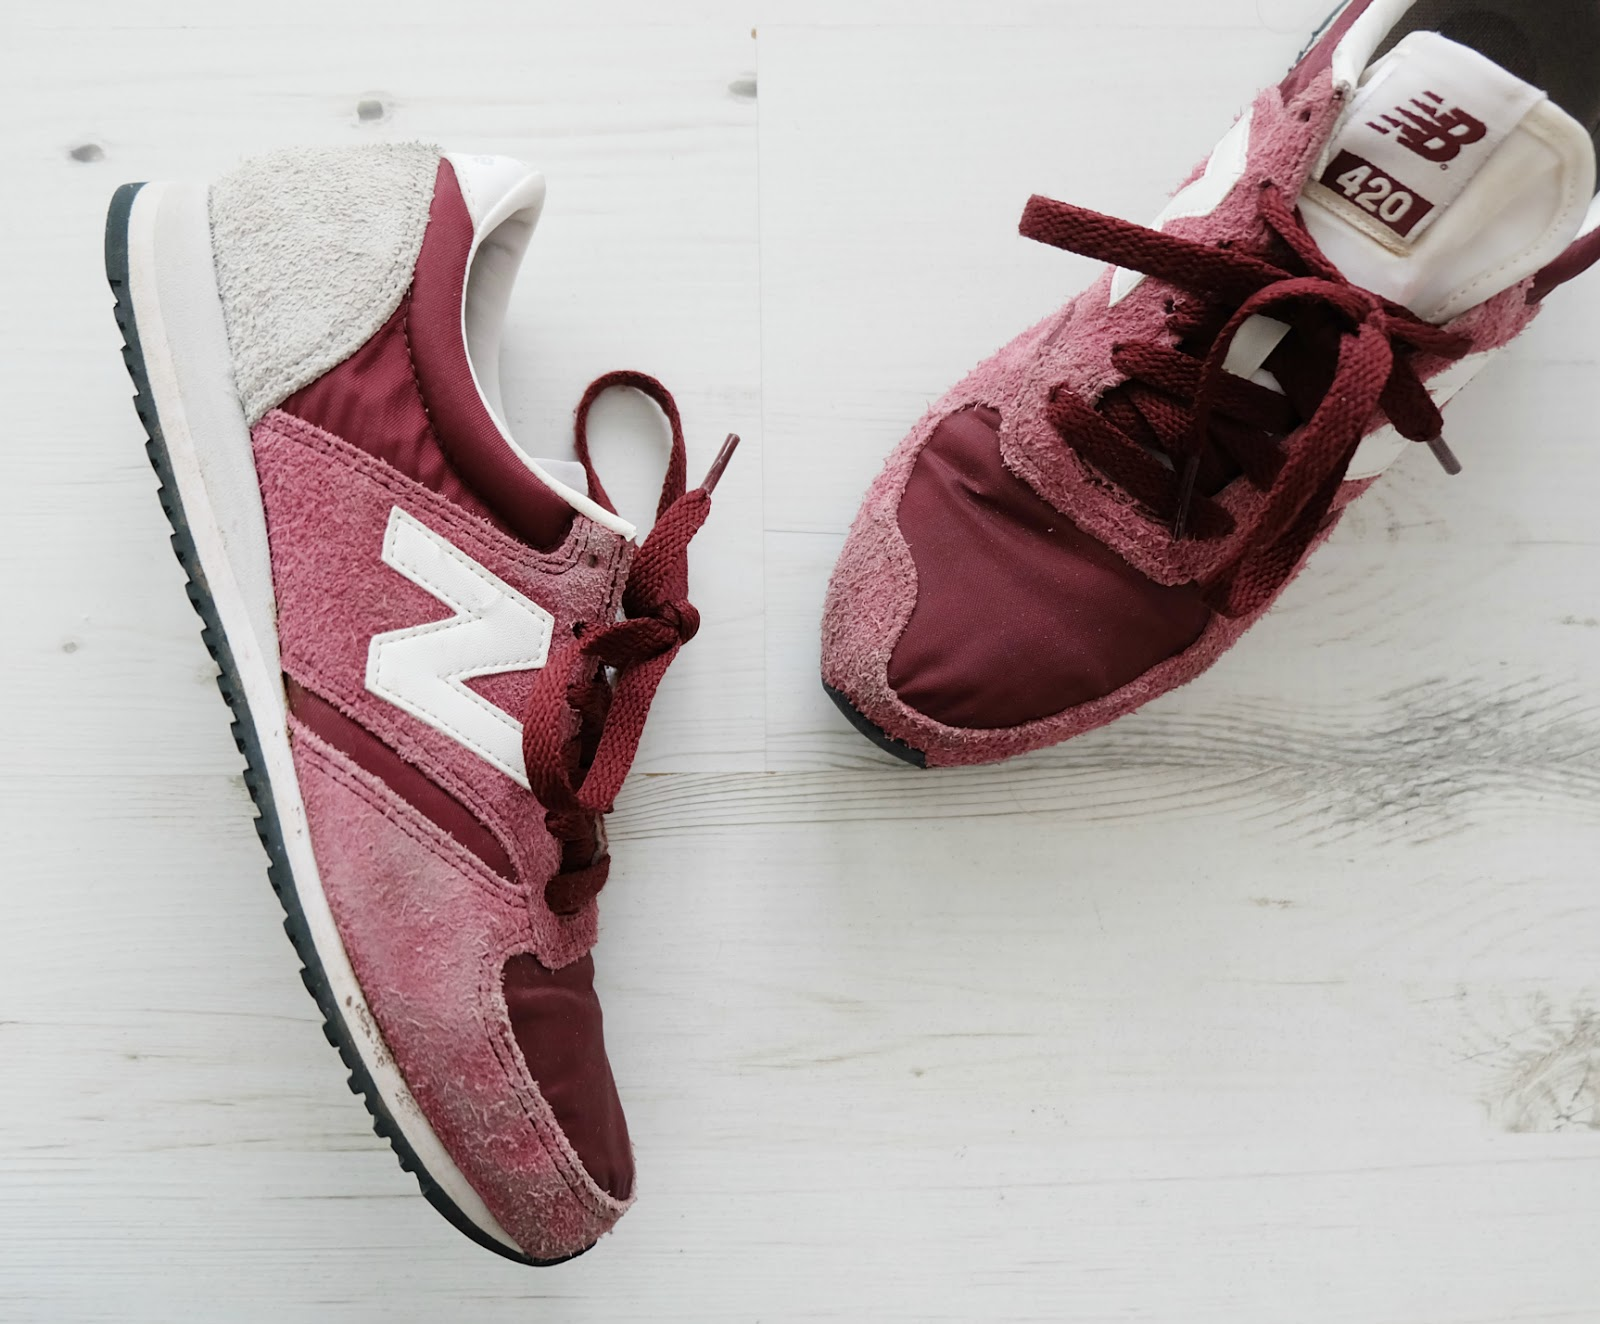 new balance 420 review, new balance grey and burgundy 420